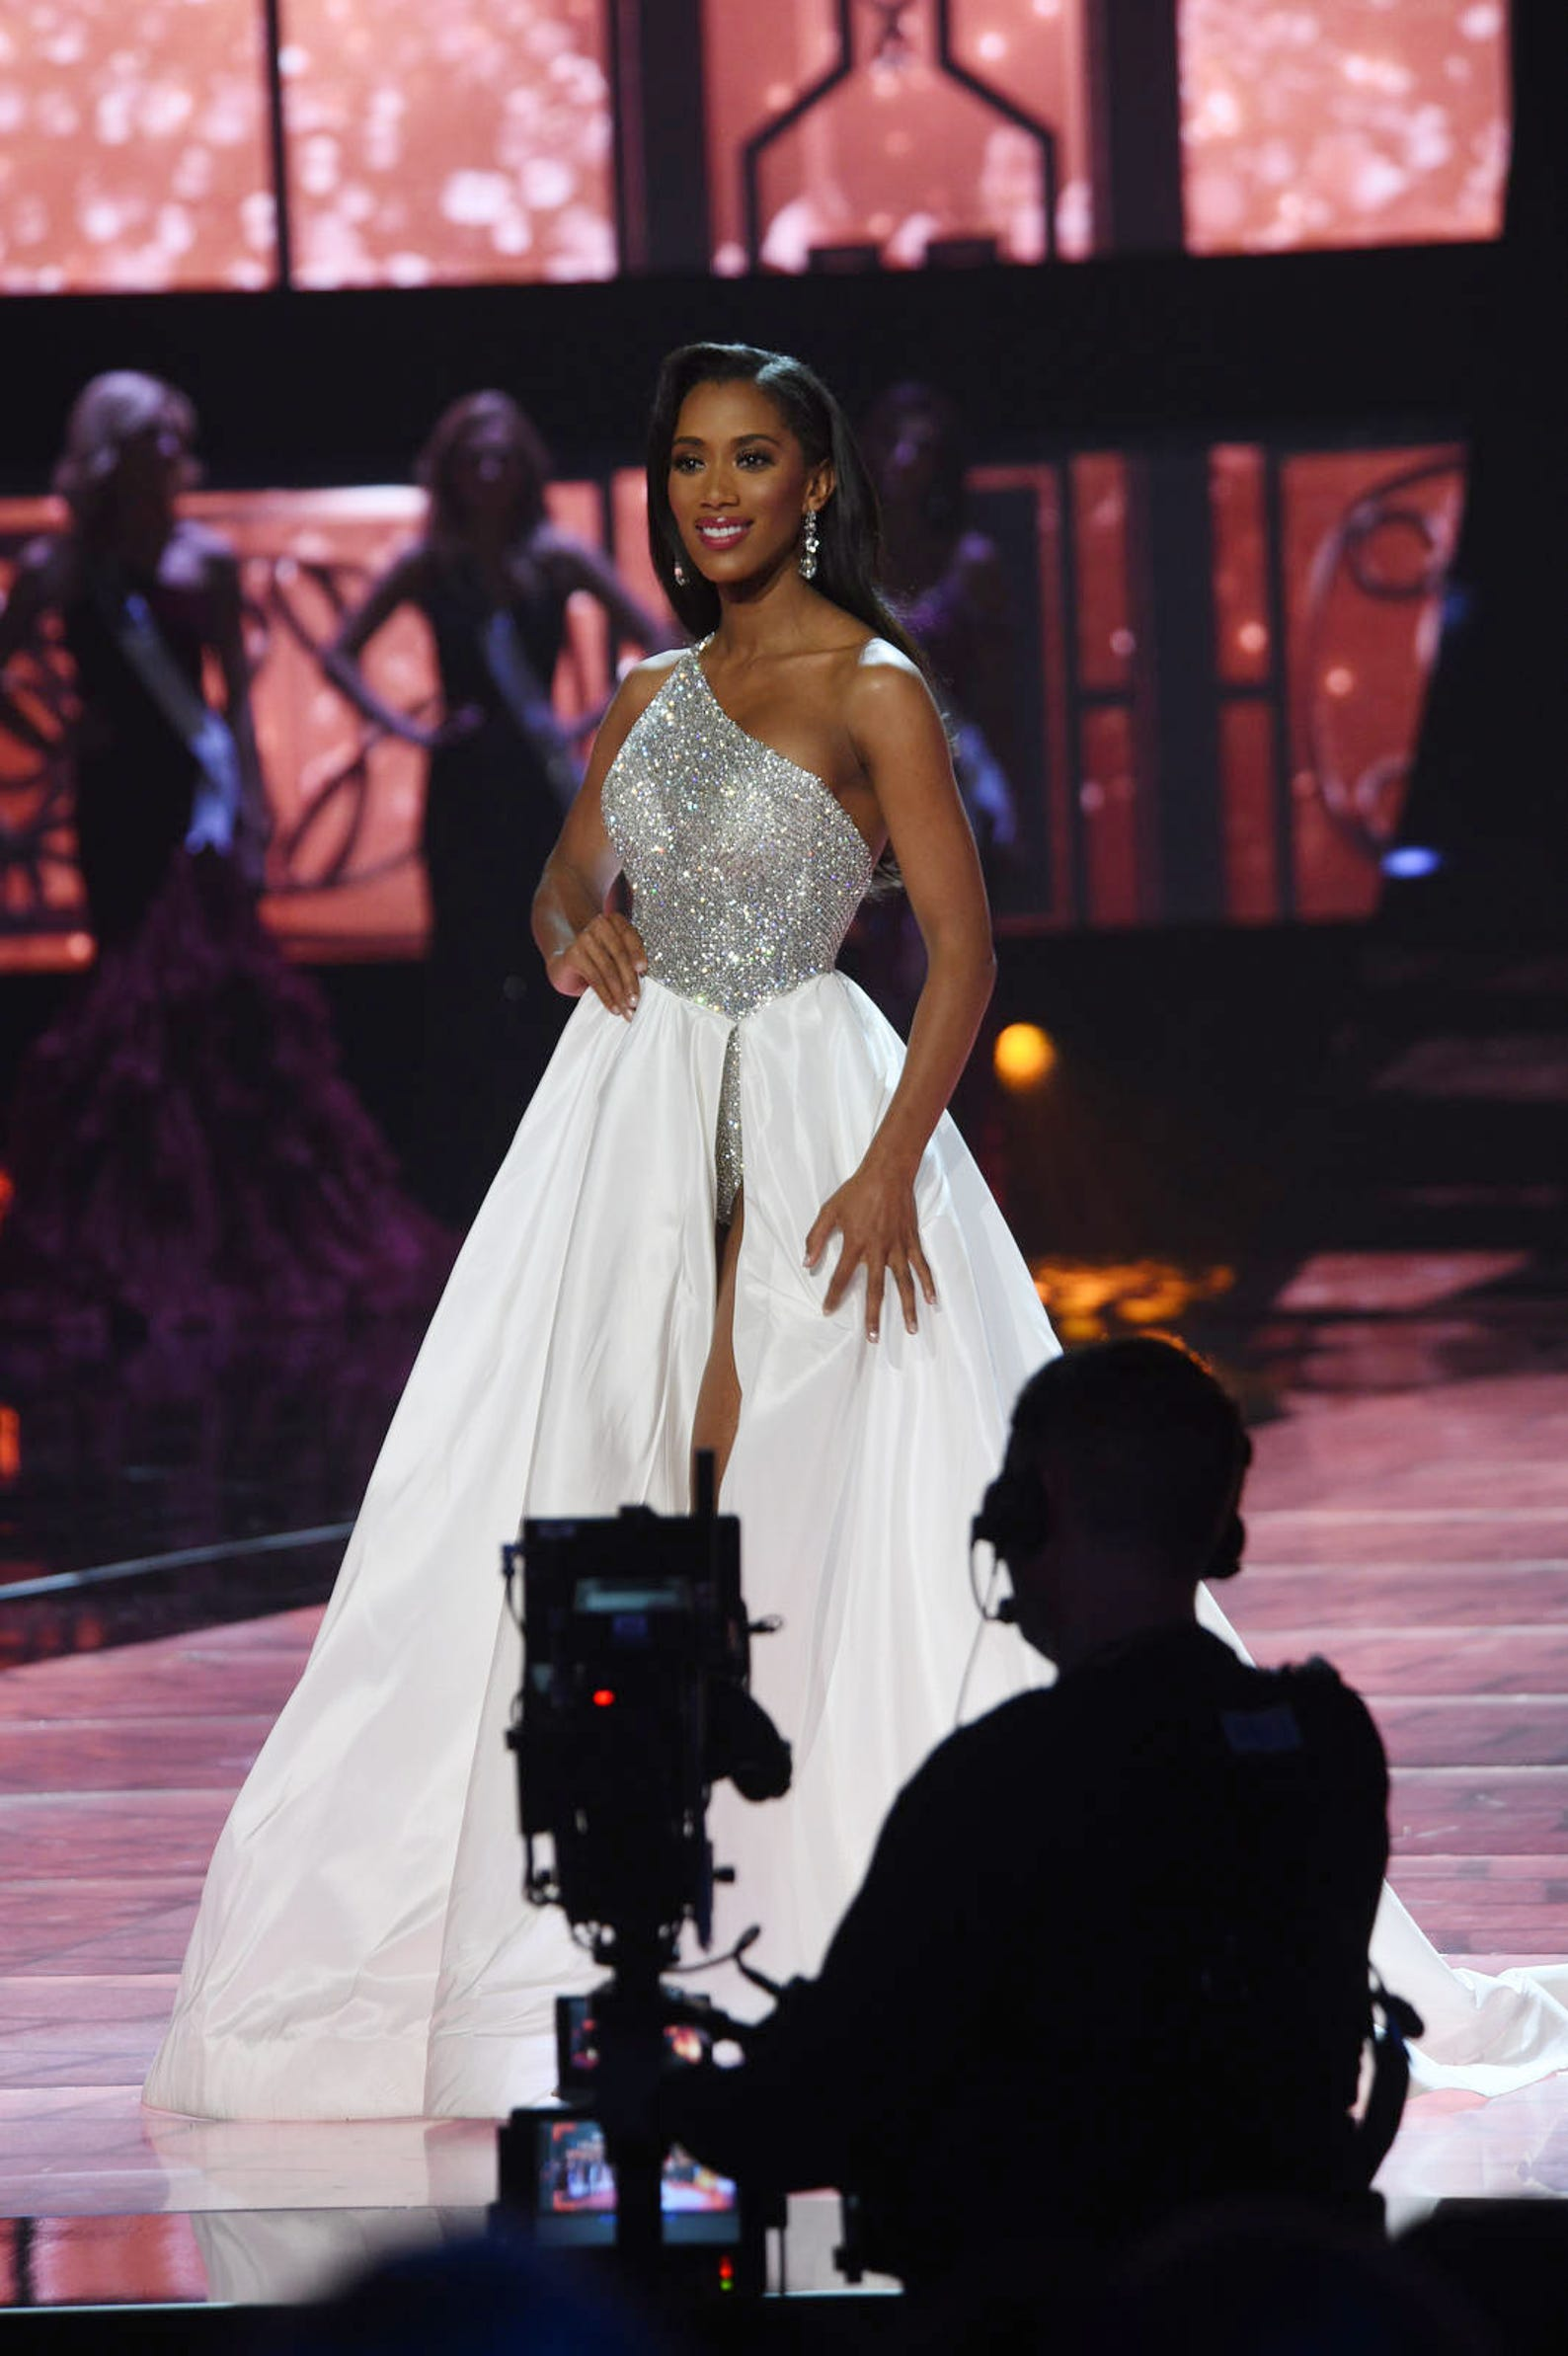 Miss Nevada Tianna Tuamoheloa competes during Miss USA 2019.